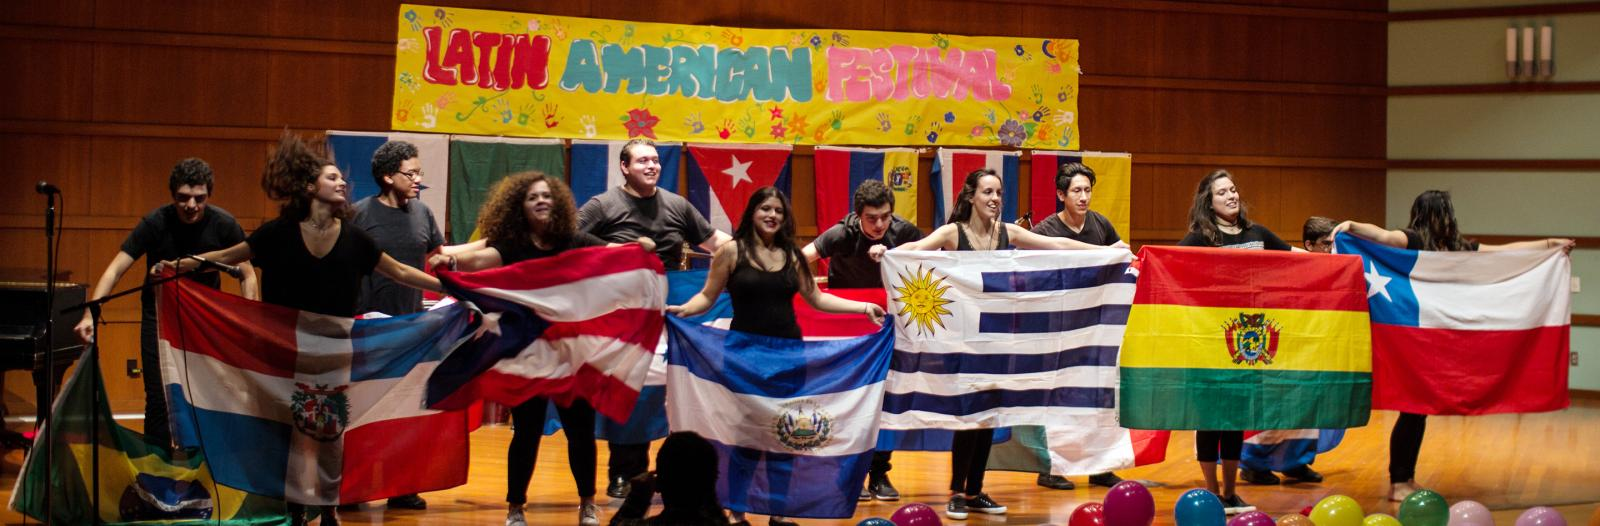 Students at Latin America festival